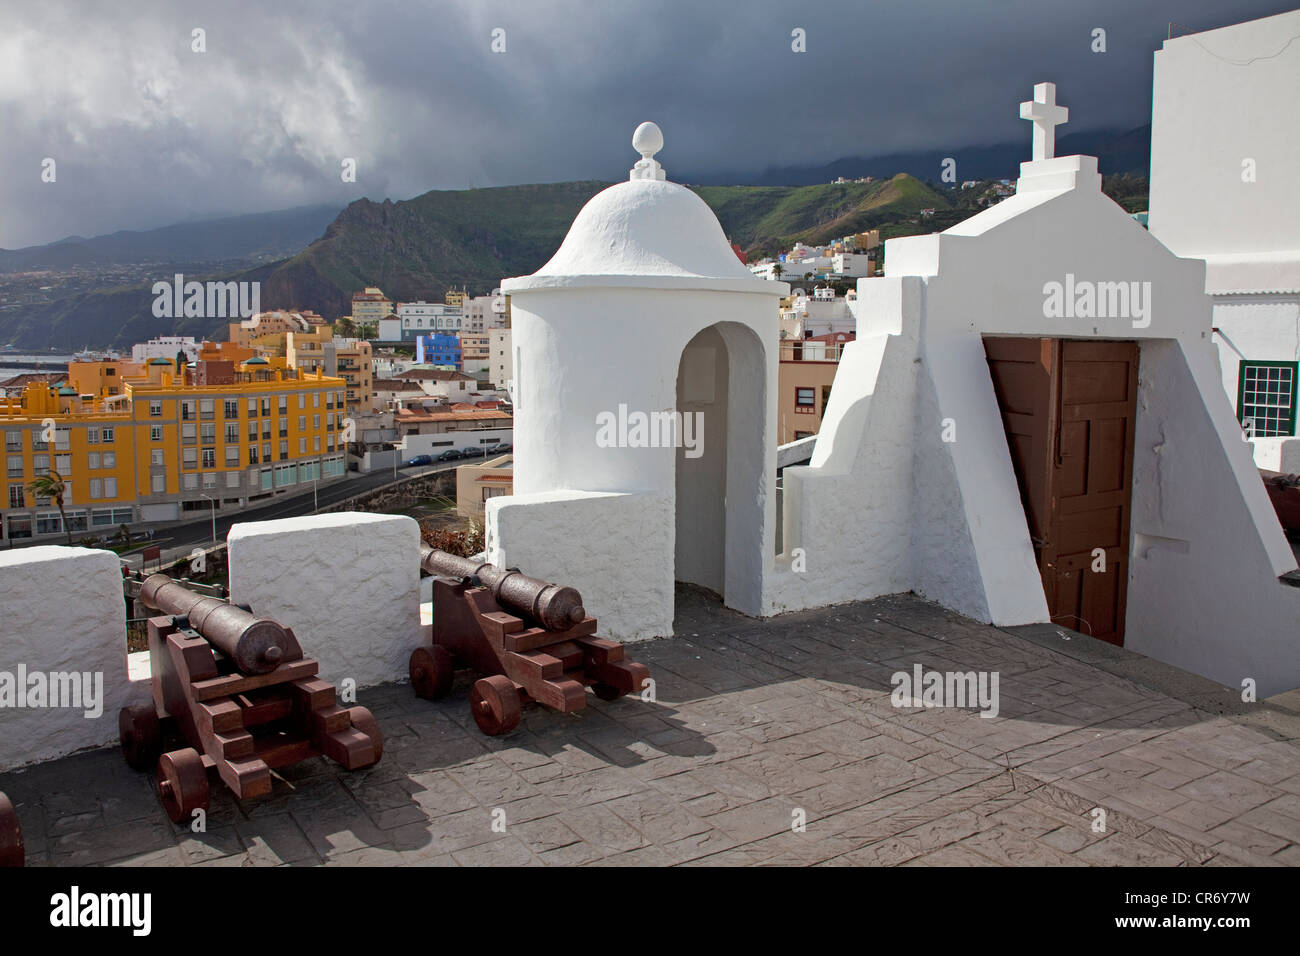 The fortress Castillo de Santa Catalina, Santa Cruz de la Palma, La Palma, Canary Islands, Spain, Europe, Atlantic - Stock Image